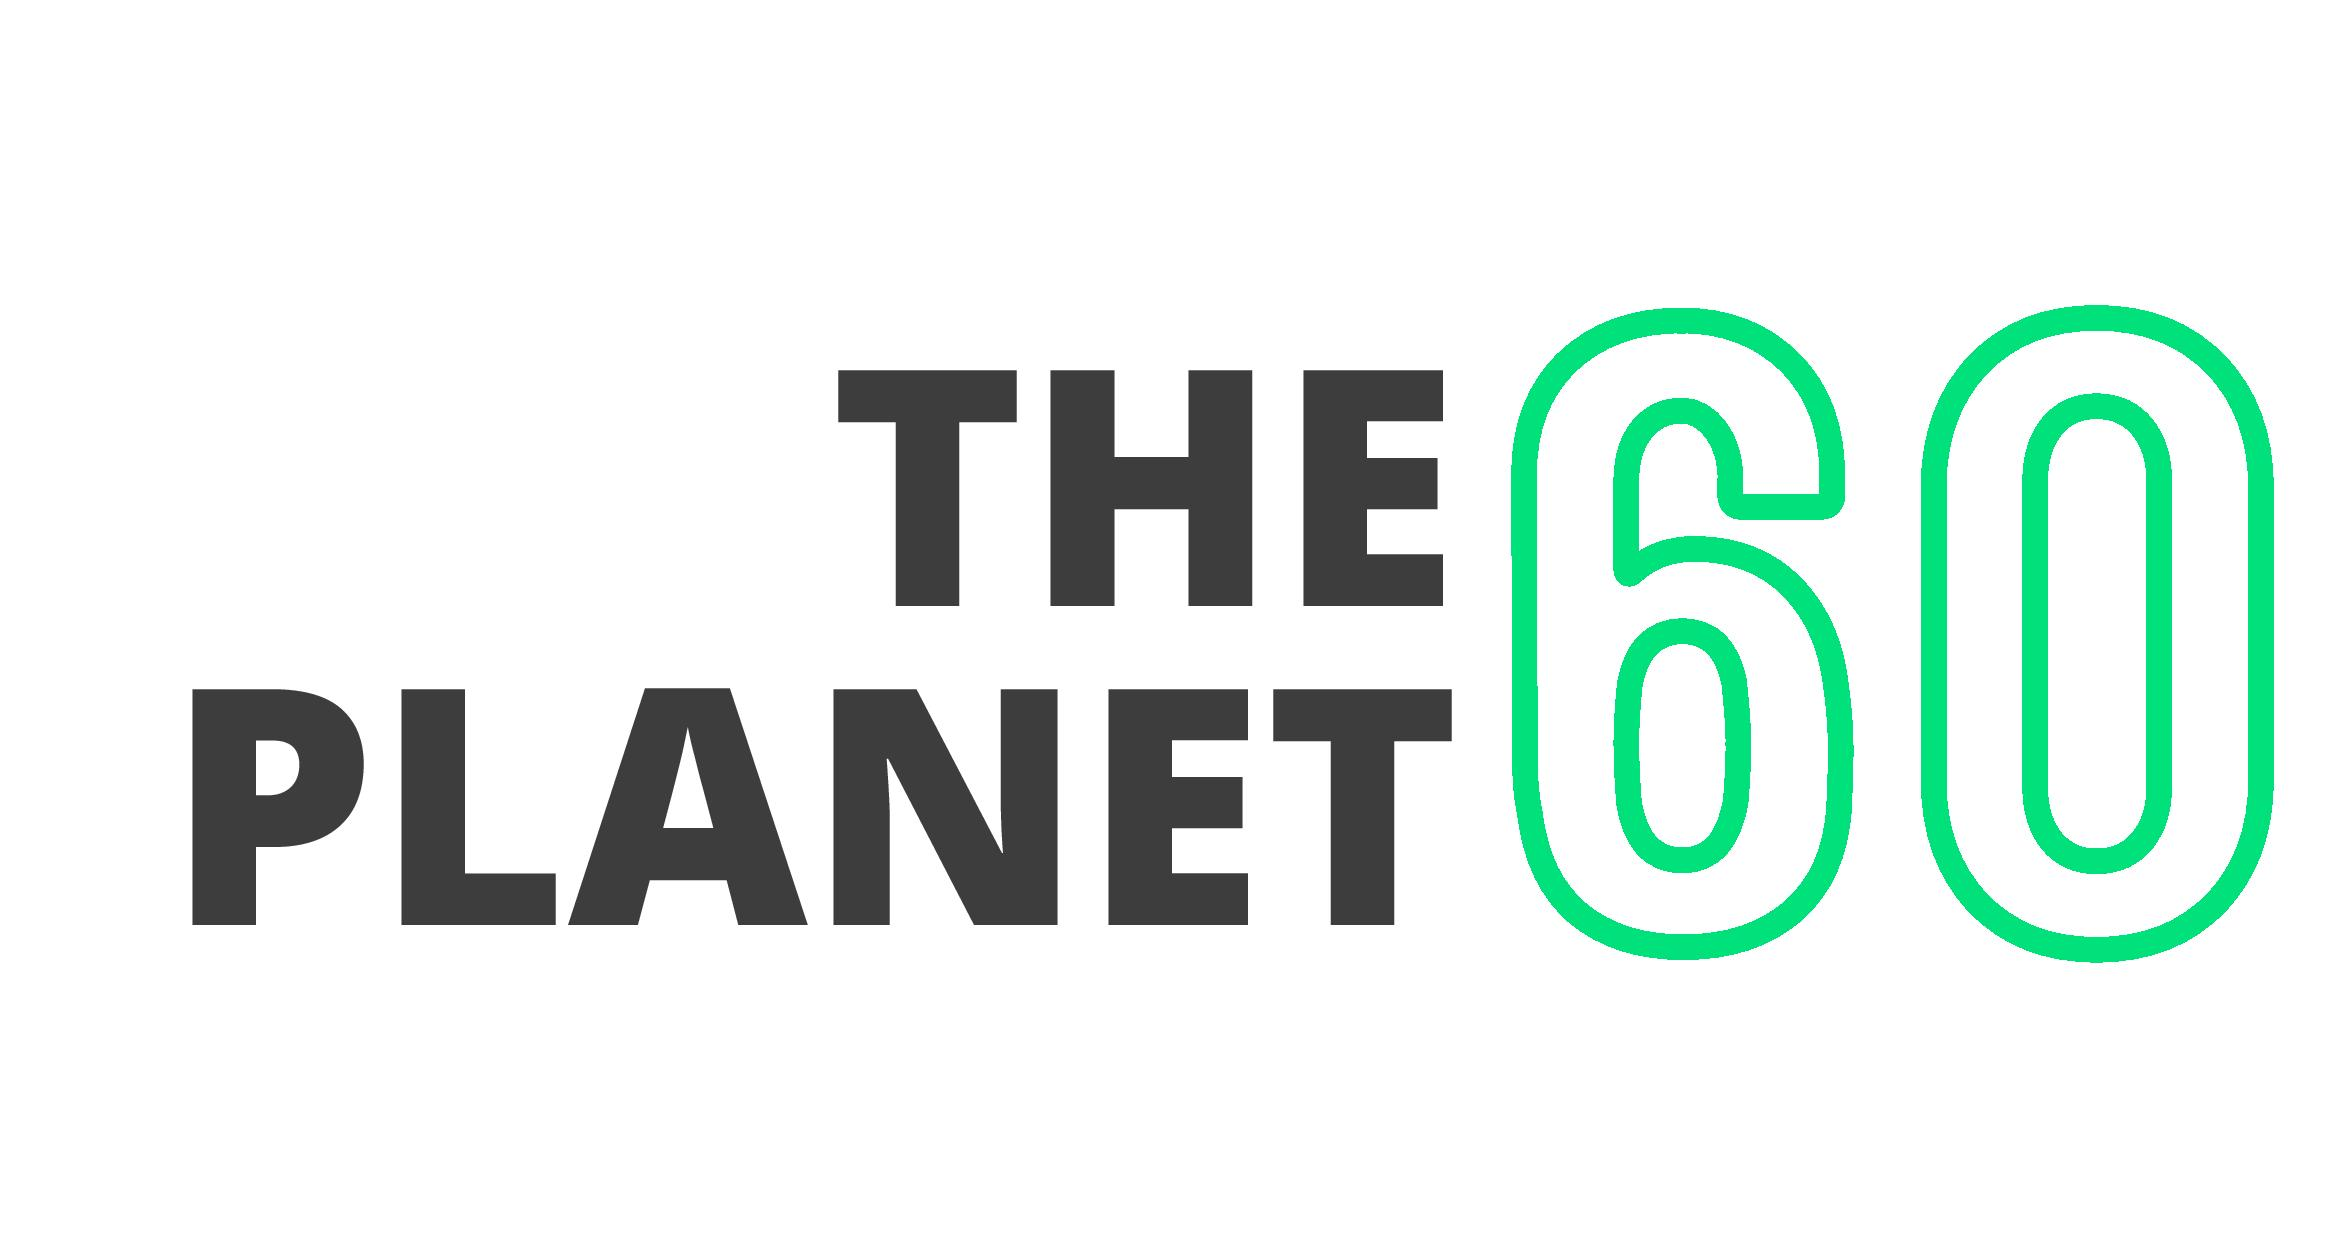 North York's famous cannabis / weed store called The Planet 60 dispensary